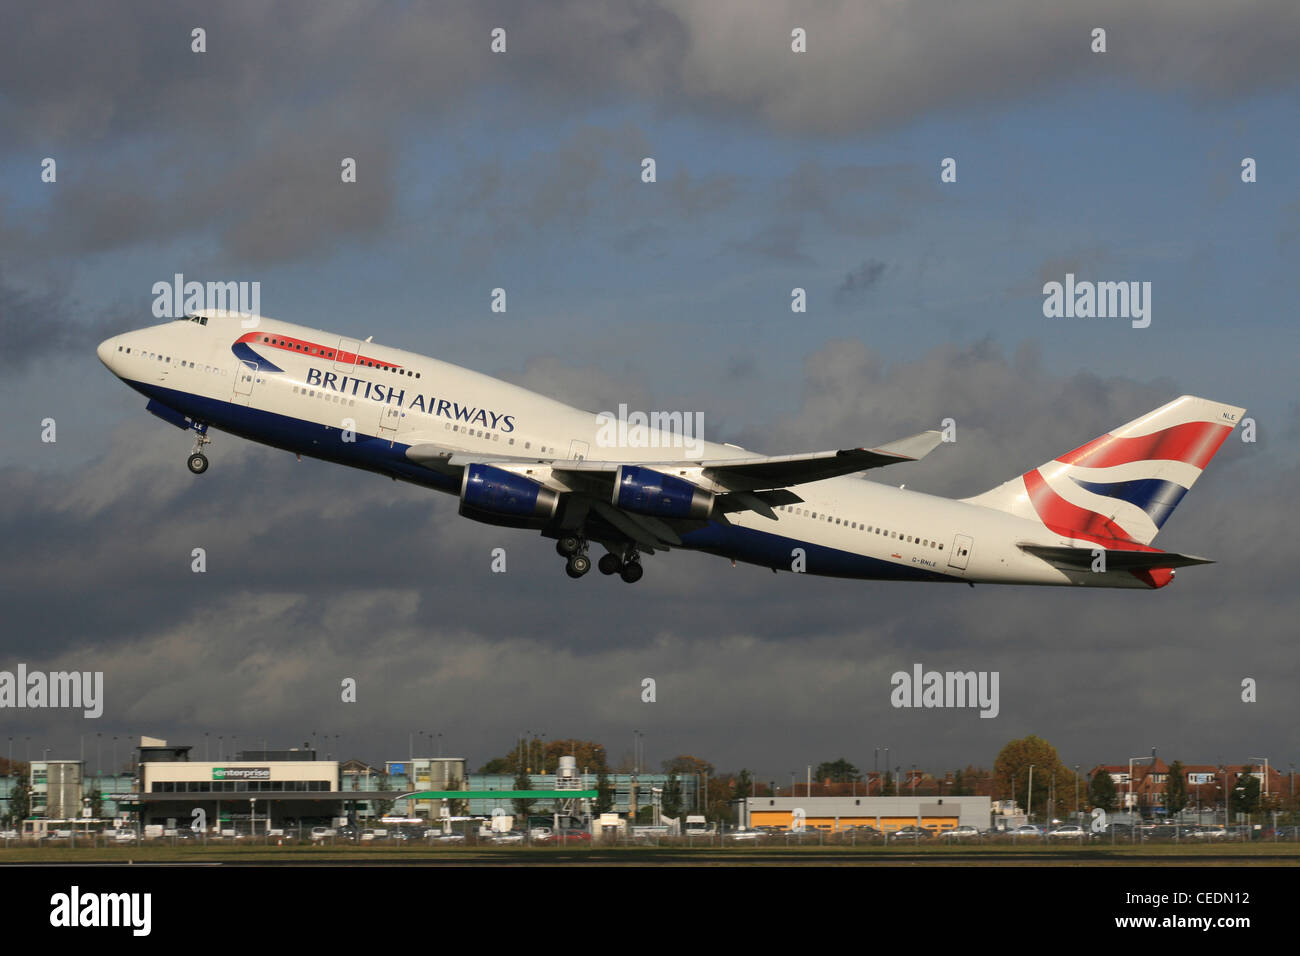 BA BRITISH AIRWAYS BOEING 747 400 - Stock Image